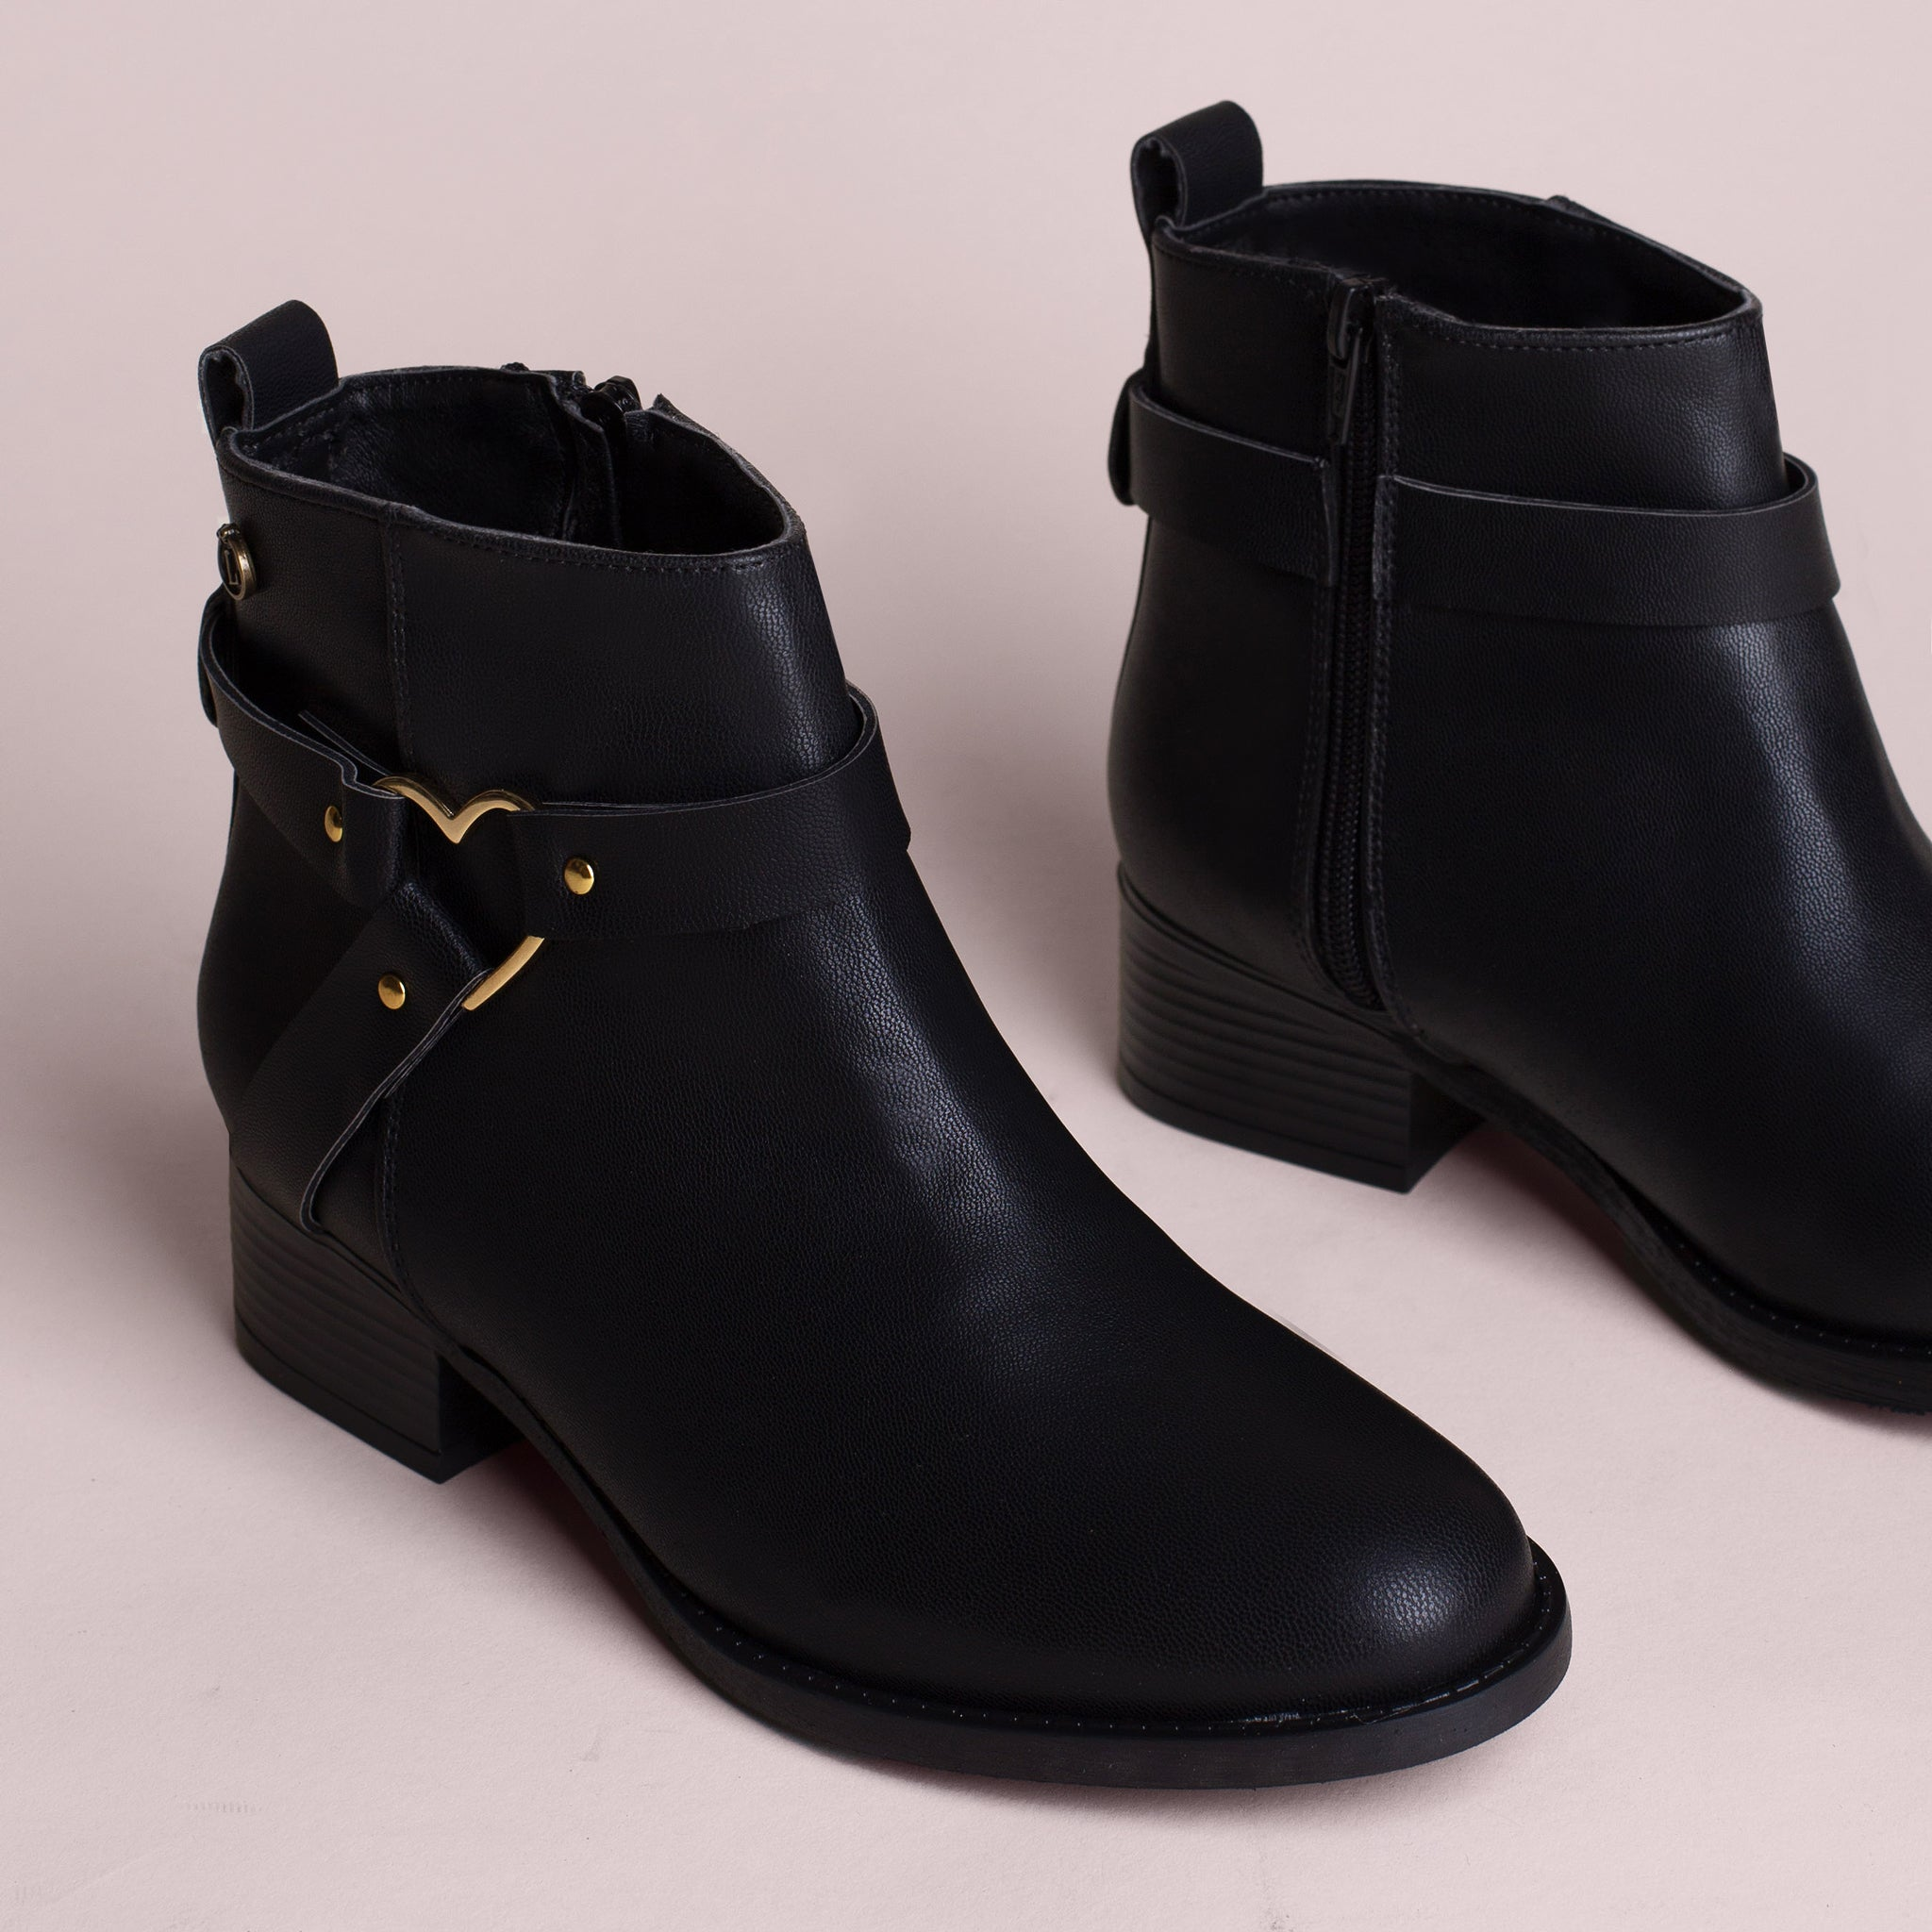 JOLENE | BOTINES NEGROS PARA MUJER | LOLY IN THE SKY